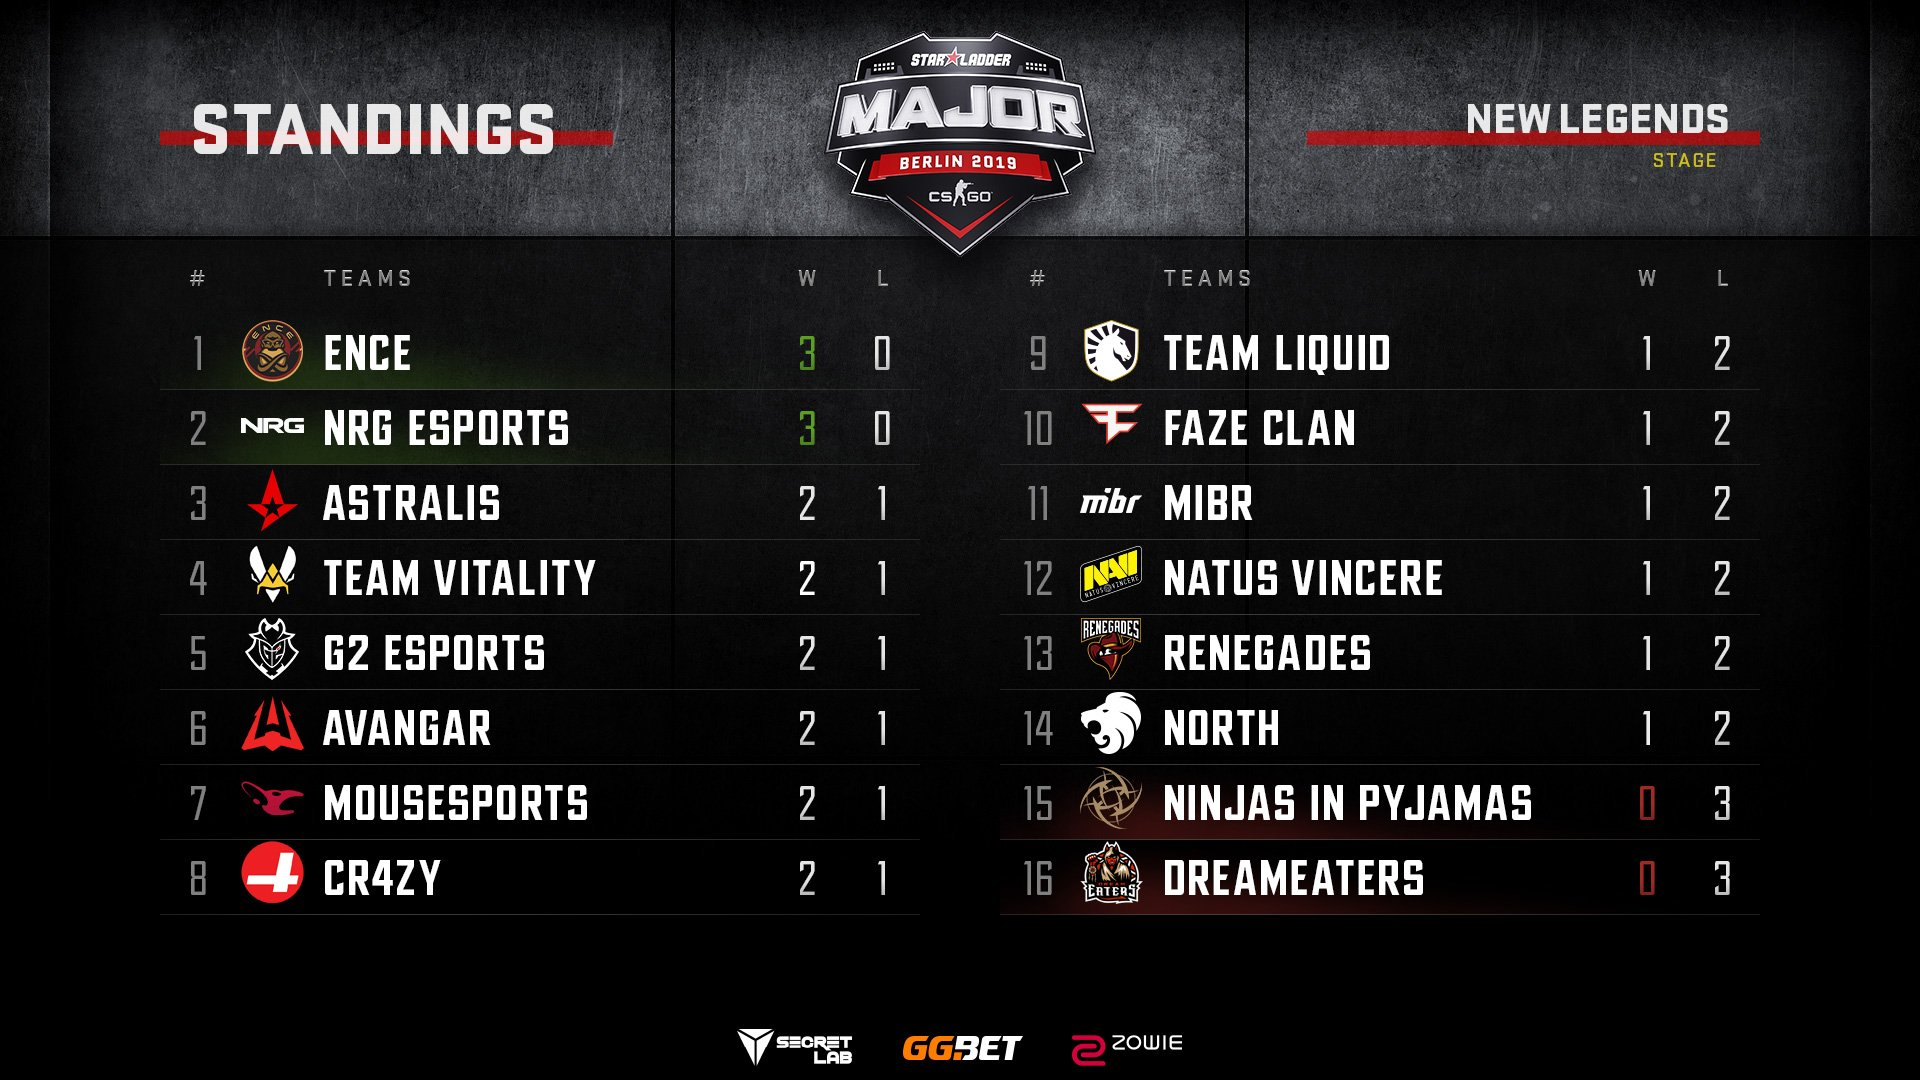 StarLadder Major CS:GO